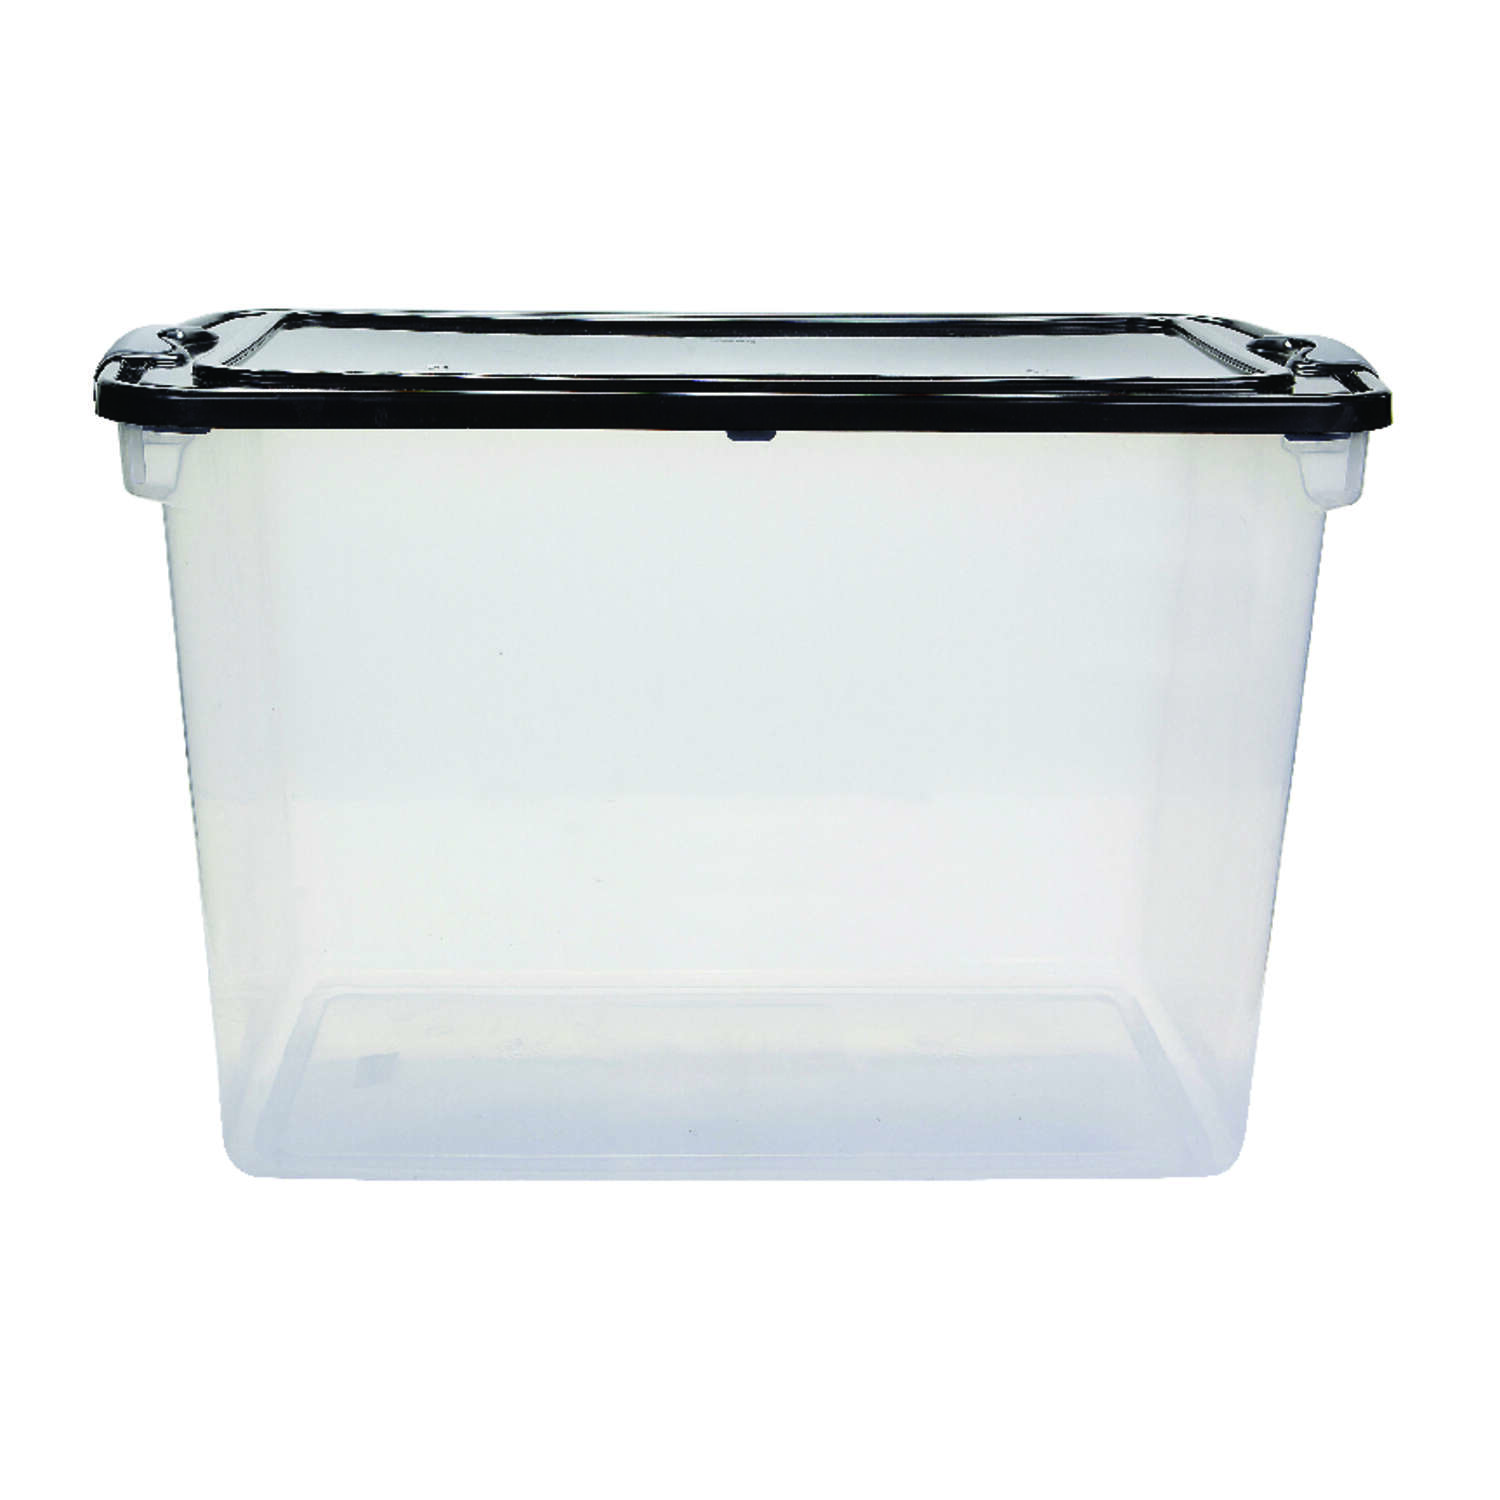 Homz Latching 18.25 in. H x 16 in. W x 28.75 in. D Stackable Storage Box